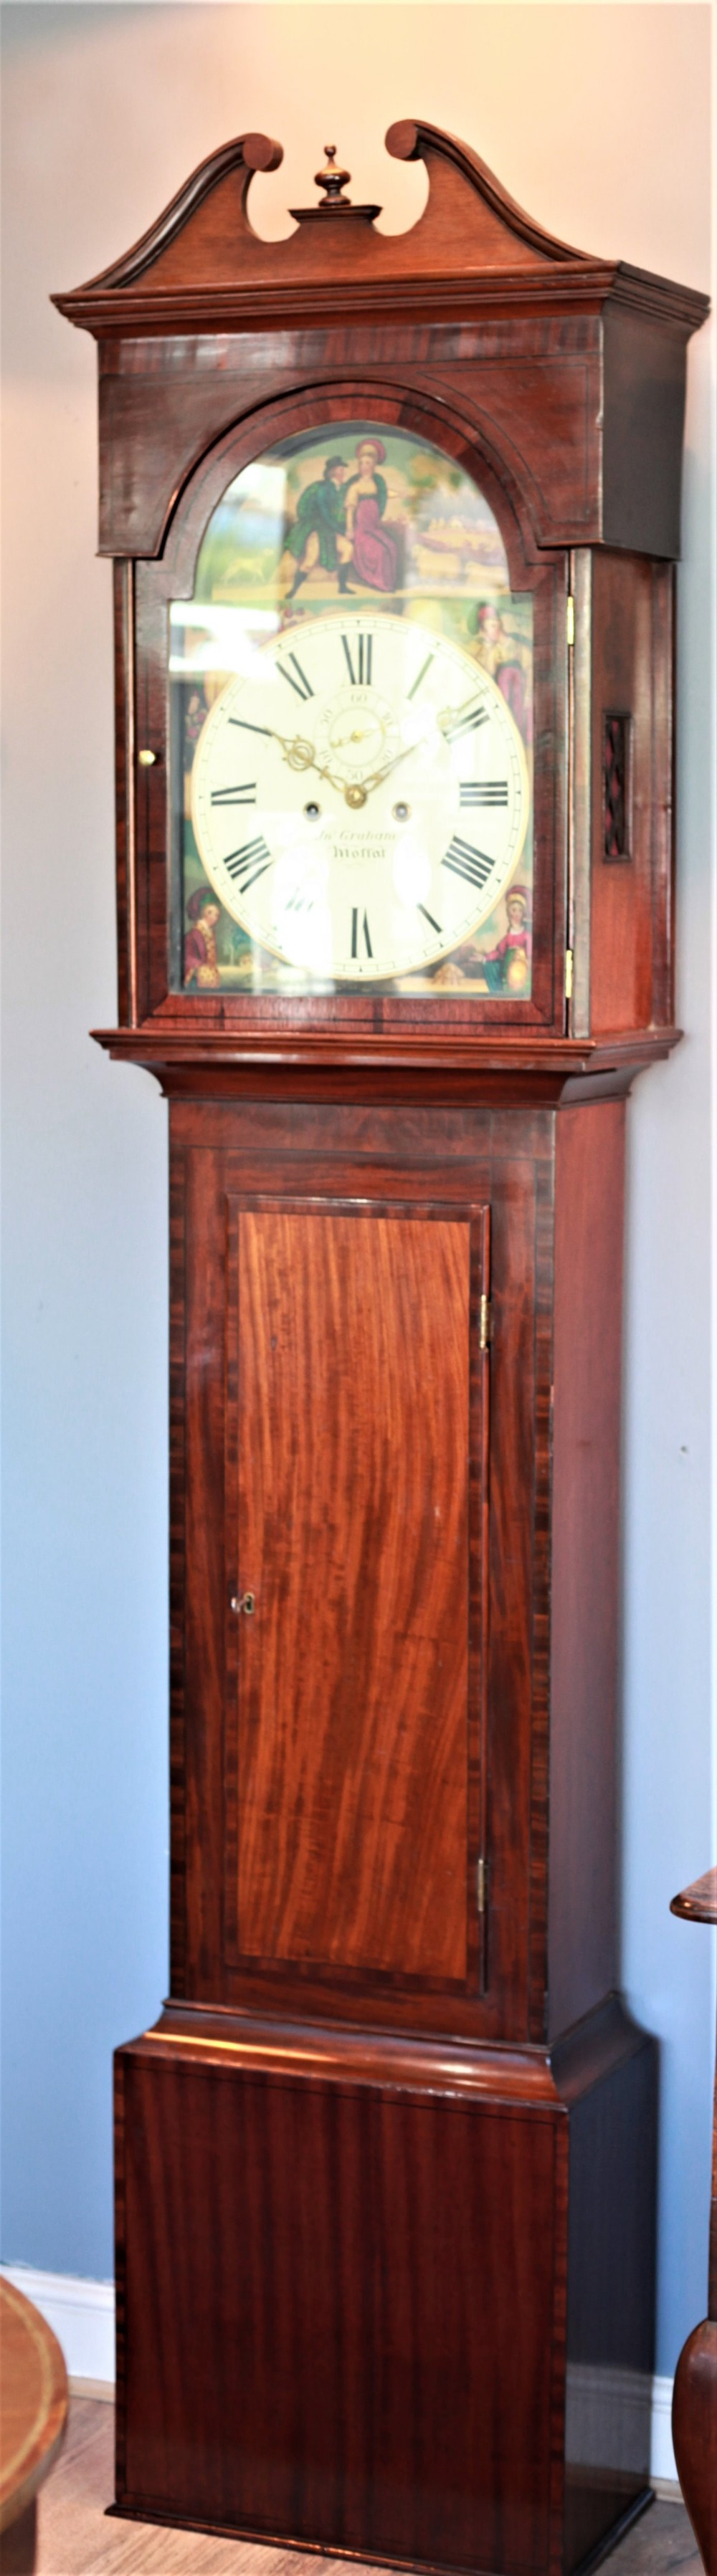 regency period scottish mahogany longcase clock by john graham of moffat